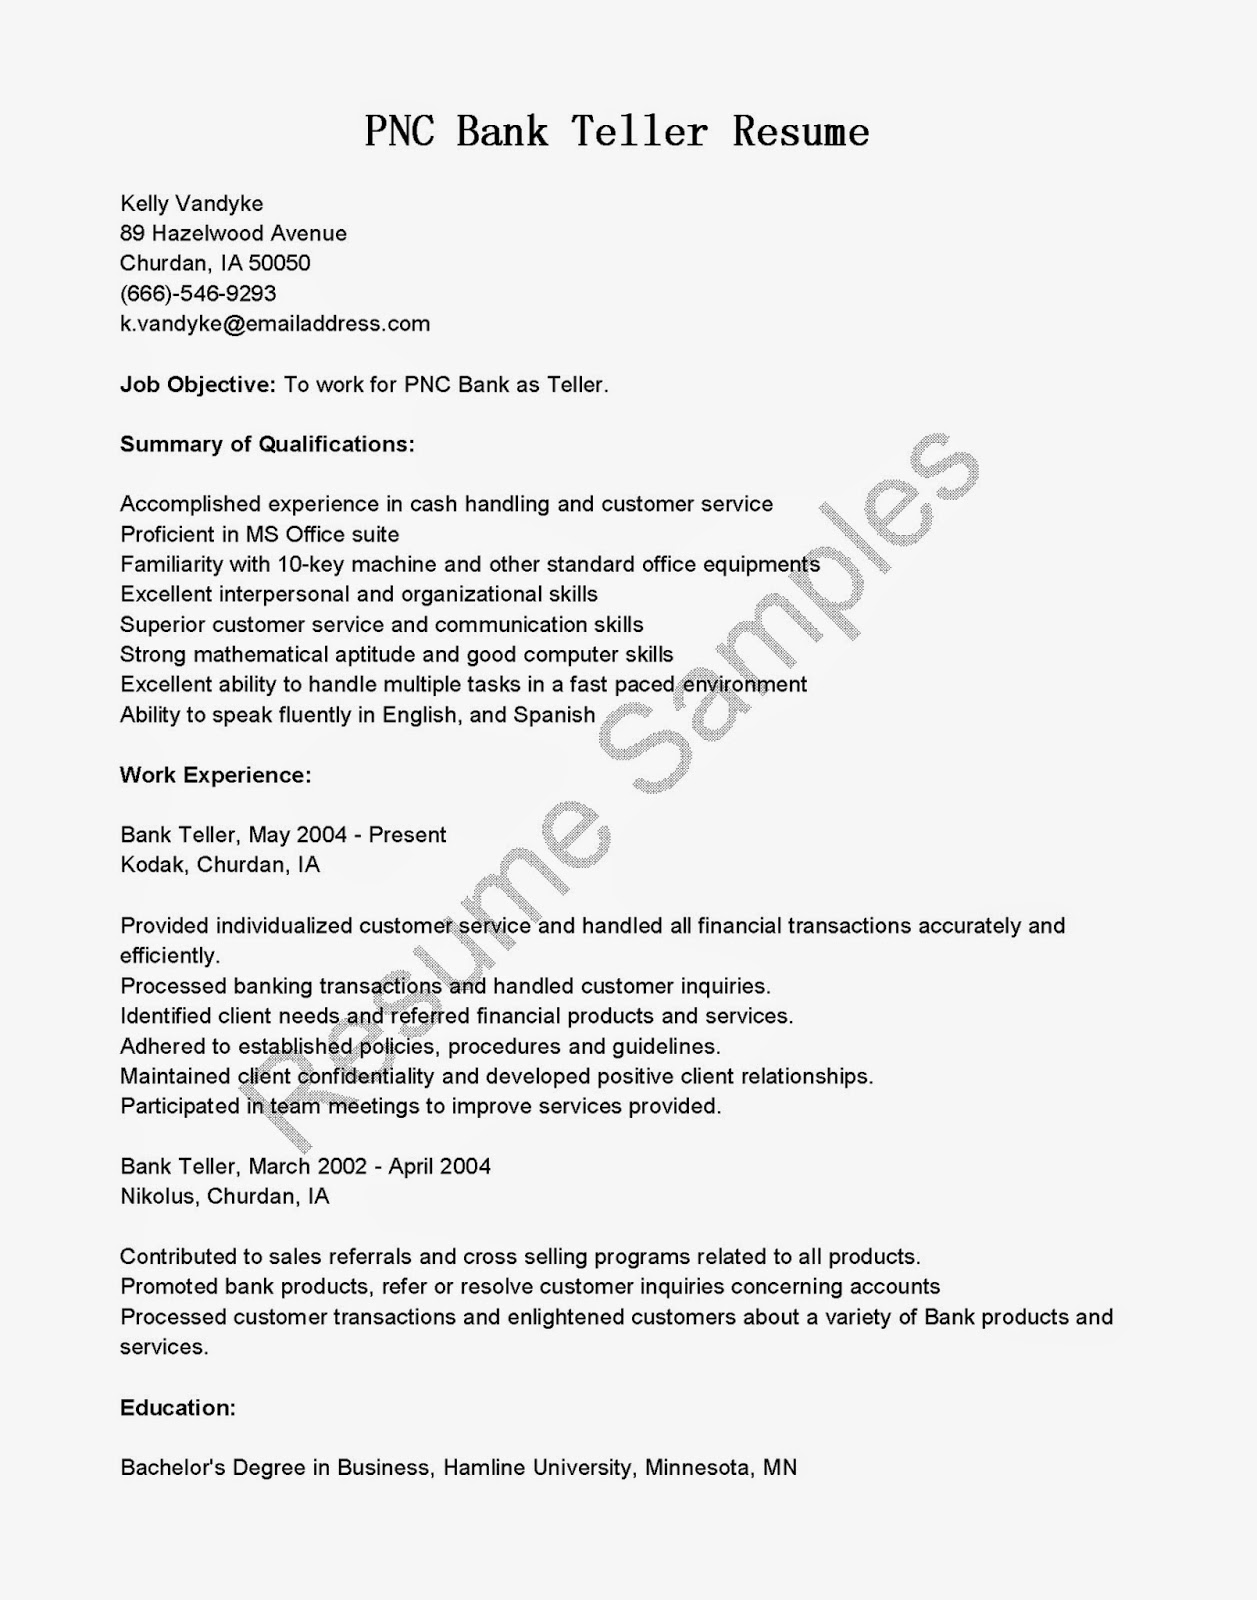 resume samples  pnc bank teller resume sample